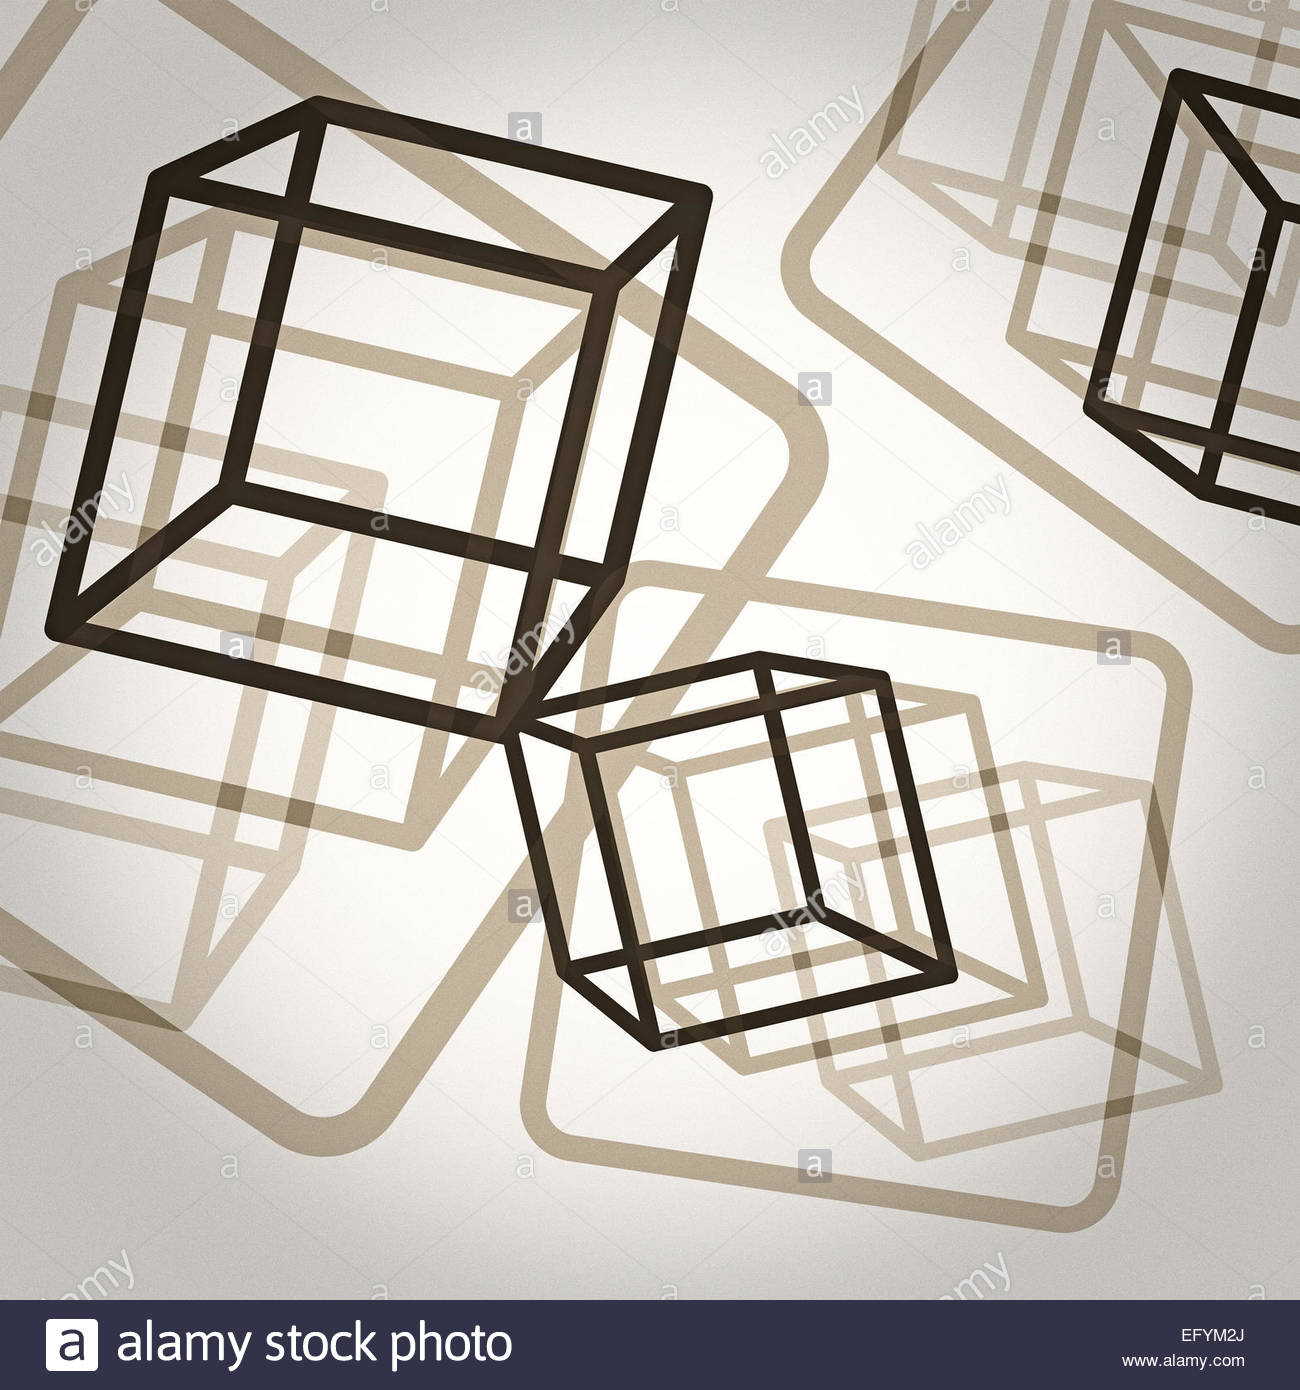 Boxed Geometric style with grain - Stock Image